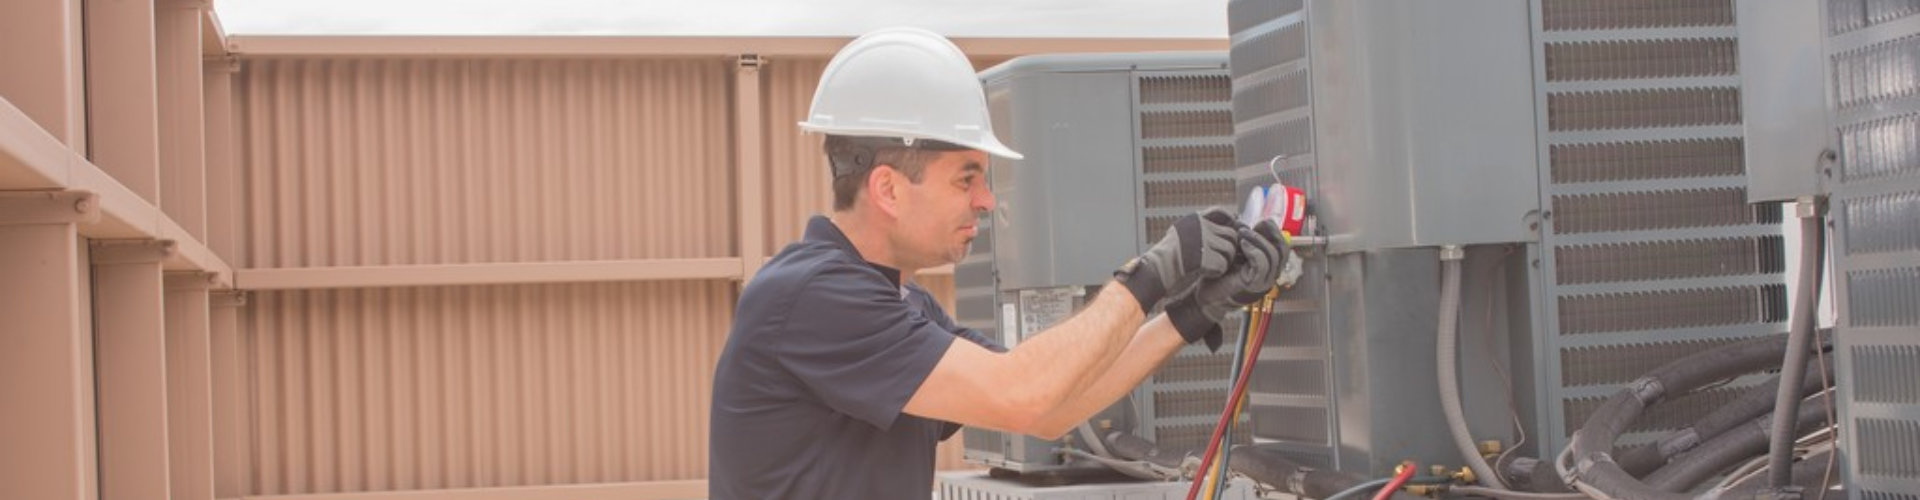 Technician taking a cover plate off an air conditioner condenser